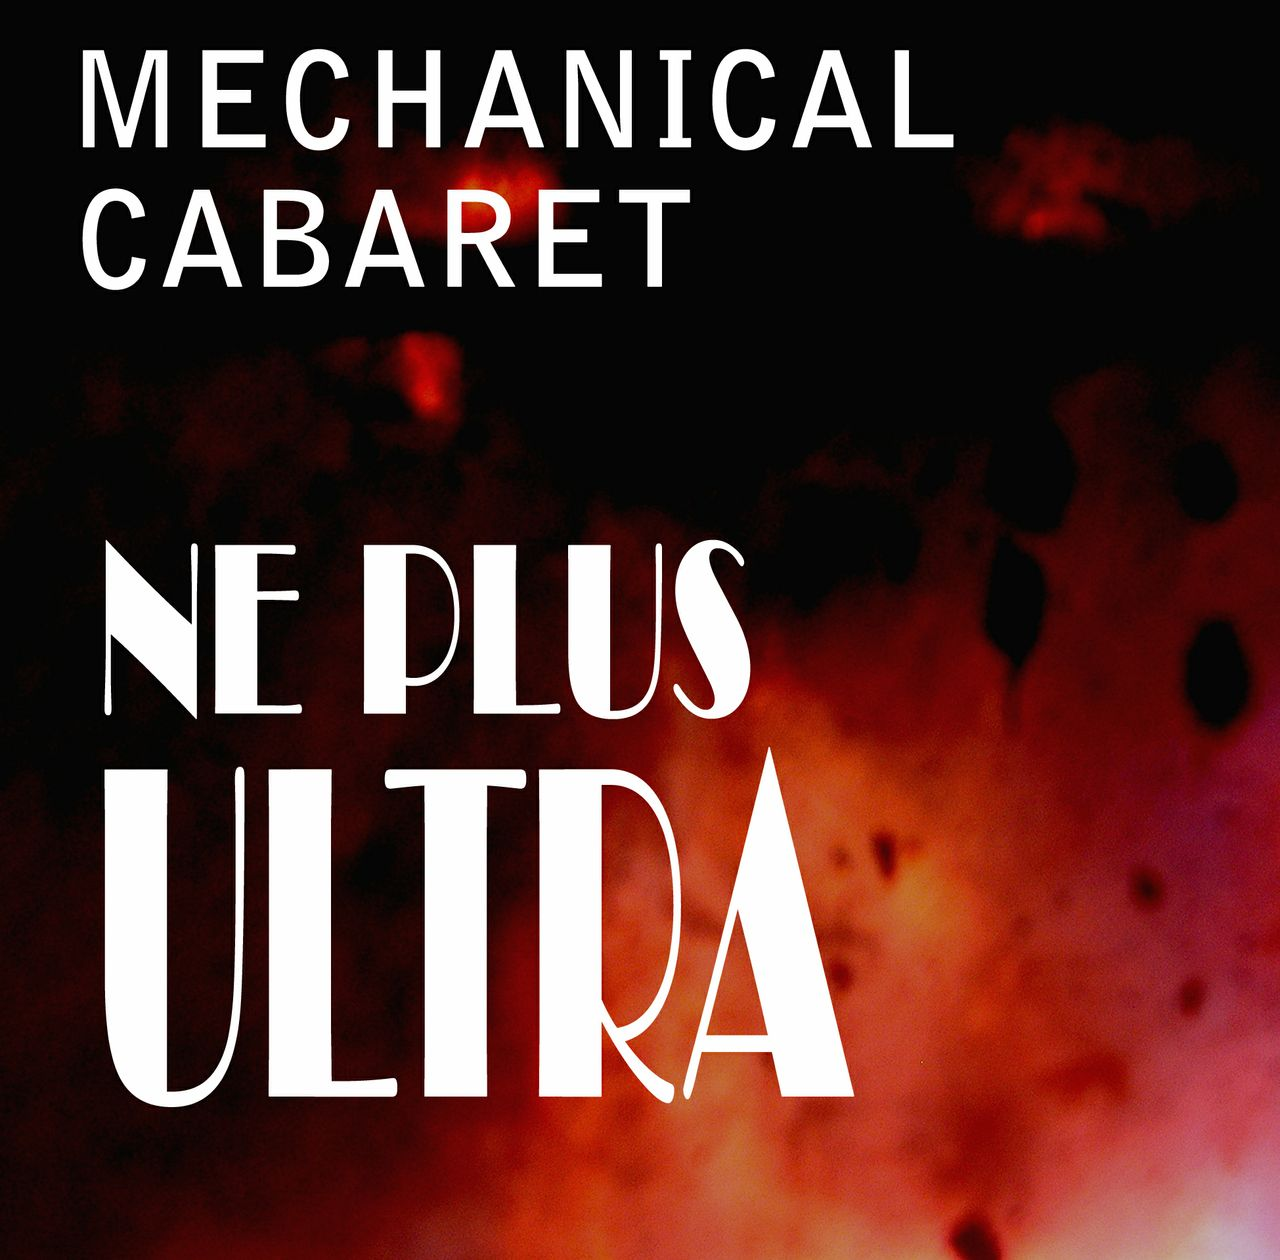 Mechanical Cabaret - Ne Plus Ultra - Single - 5 tracks